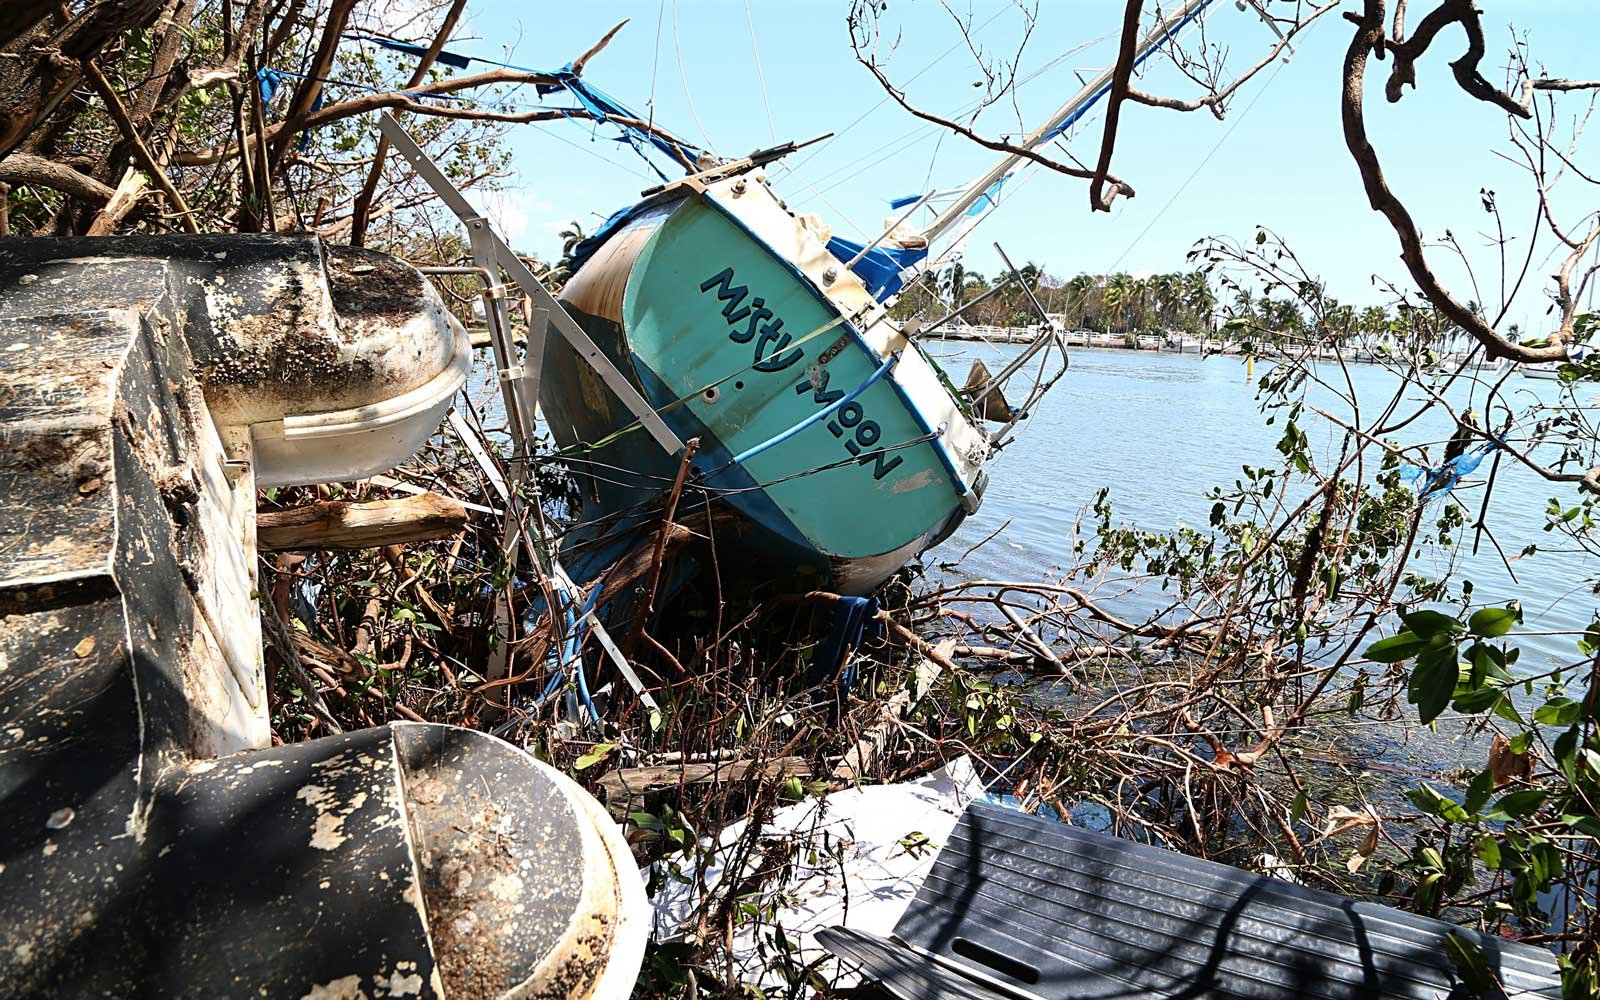 A damaged sail boat washed ashore at the Grove Key Marina in Miami, after Hurricane Irma passed over South Florida, on Tuesday, Sept. 12, 2017